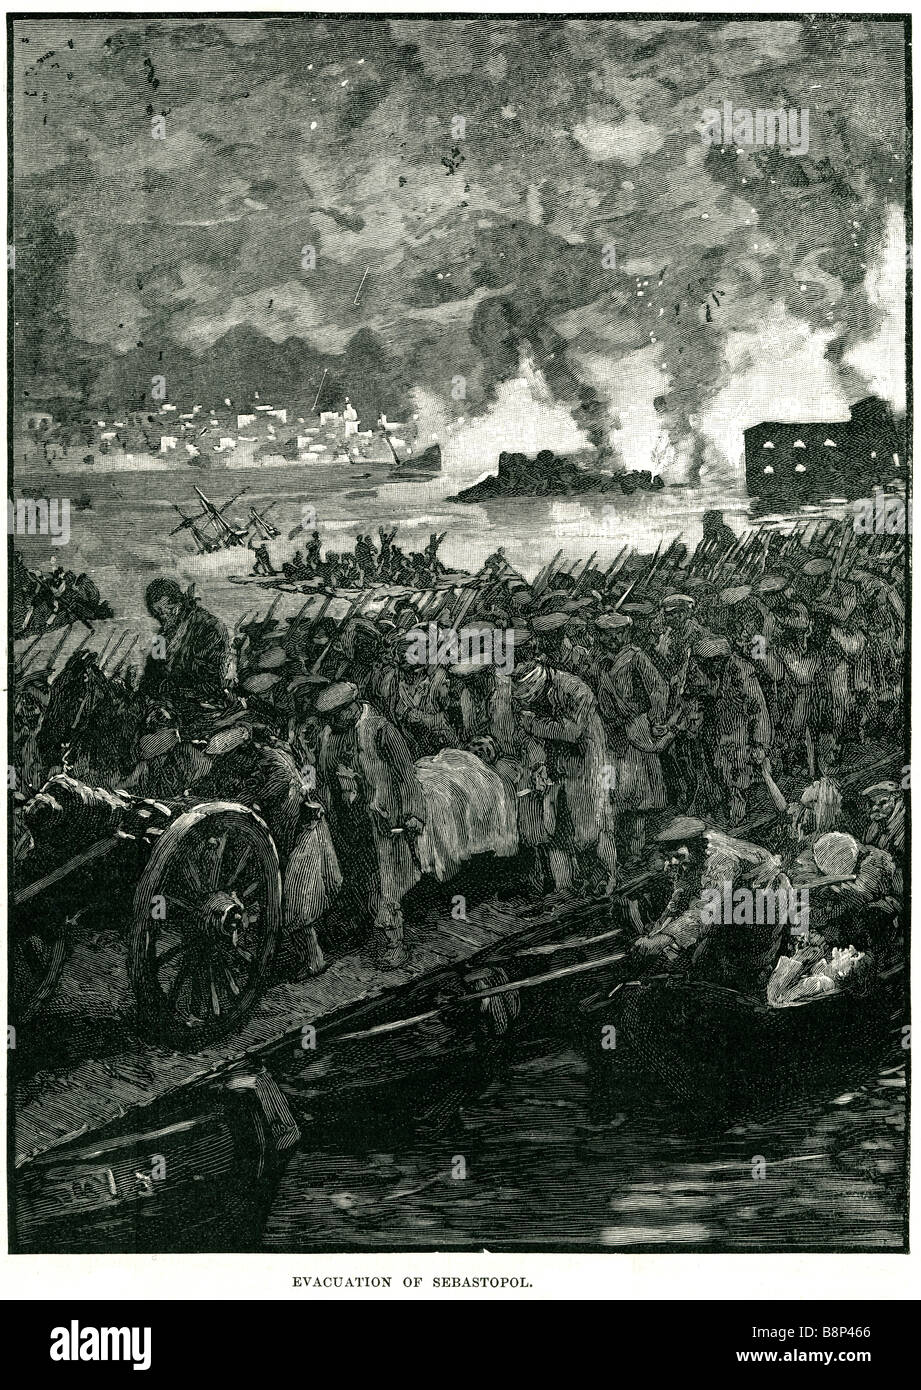 evacuation Siege of Sevastopol Crimean War 1855 Allied troop gun batteries trenches - Stock Image